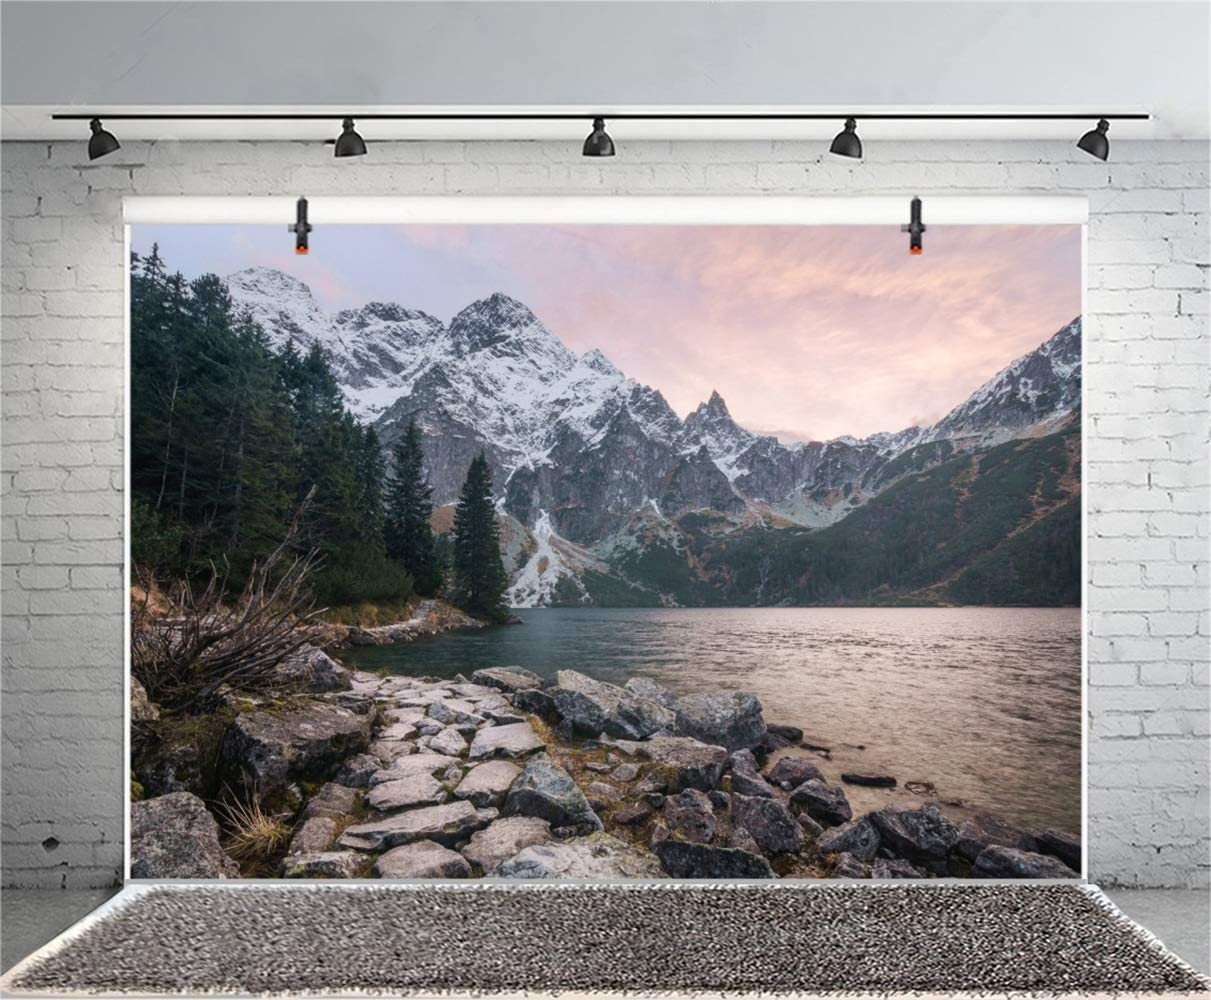 GoEoo 10x7ft Sunrise Lakeside Snow Mountains Rock Road Scenic Vinyl Photography Background Autumn Scenery Backdrop Indoor Decors Landscape Wallpaper Studio Photo Props